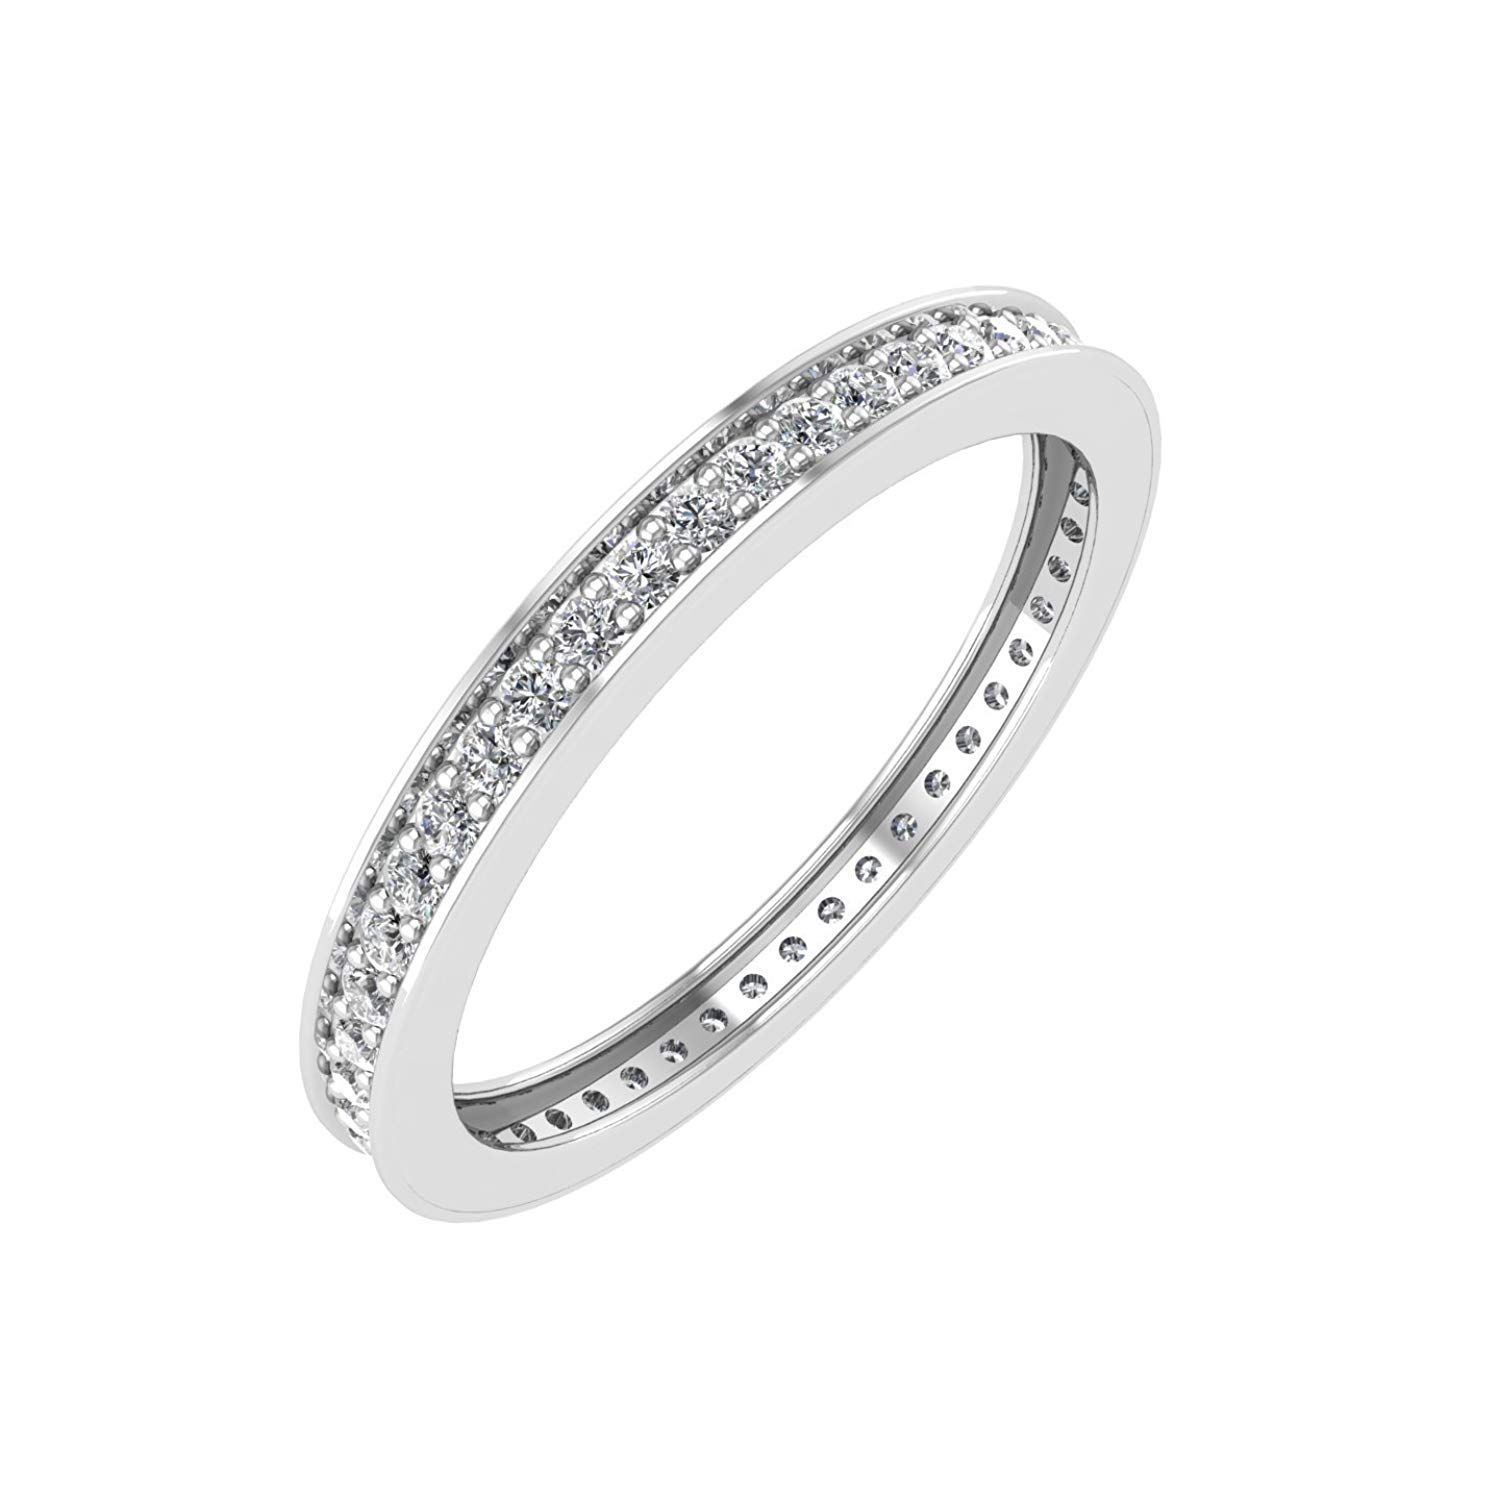 10K White Gold Pave Set Diamond Eternity Wedding/anniversary For Newest Certified Diamond Anniversary Bands In White Gold (View 7 of 25)